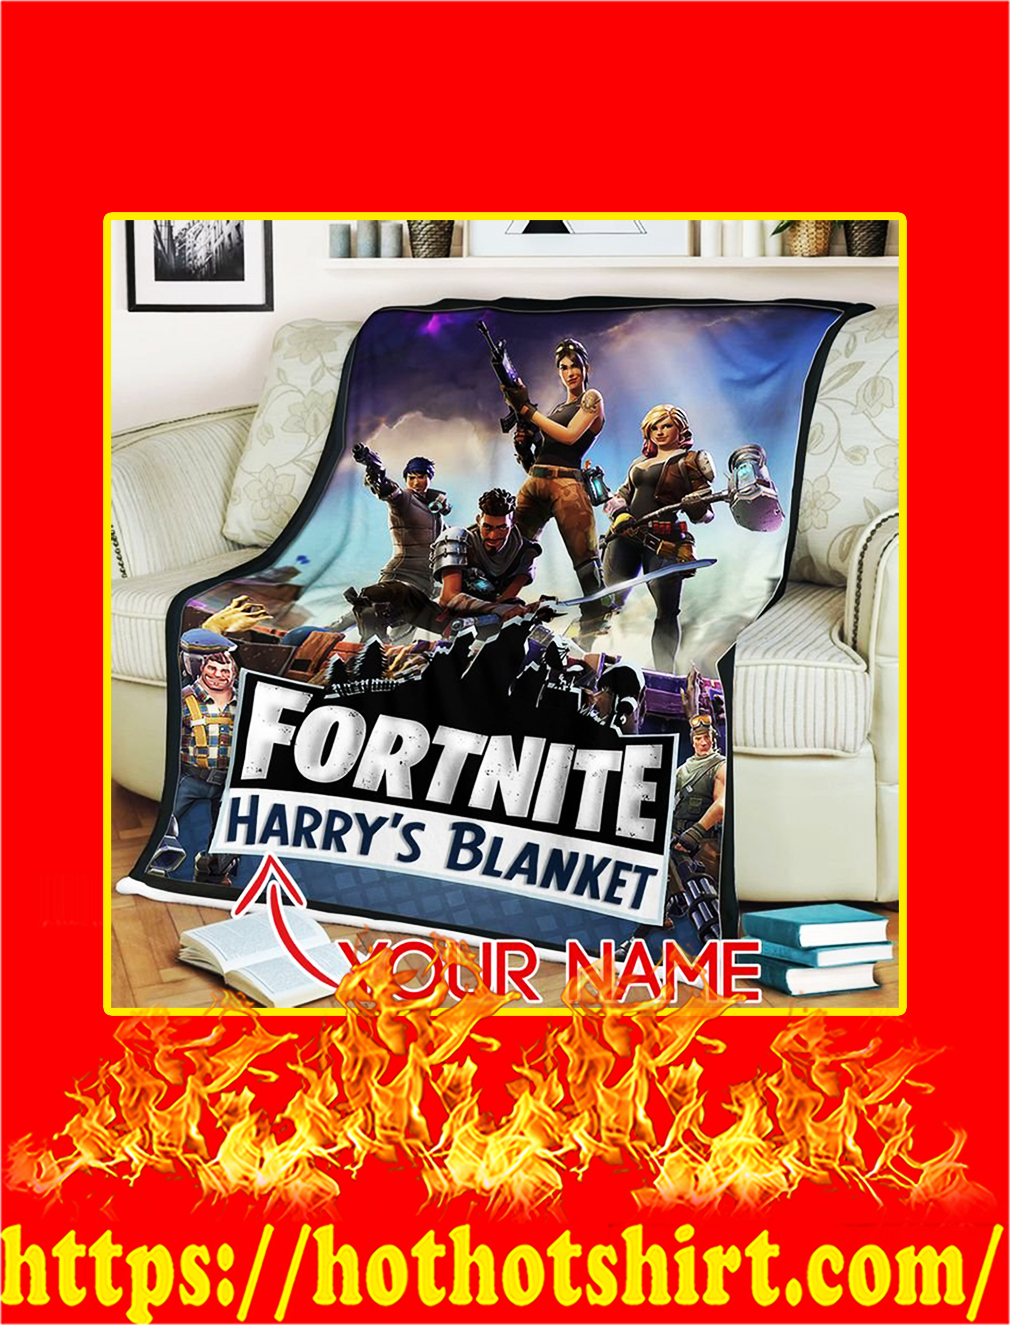 Fortnite Gaming Custom Name Personalize Blanket - small